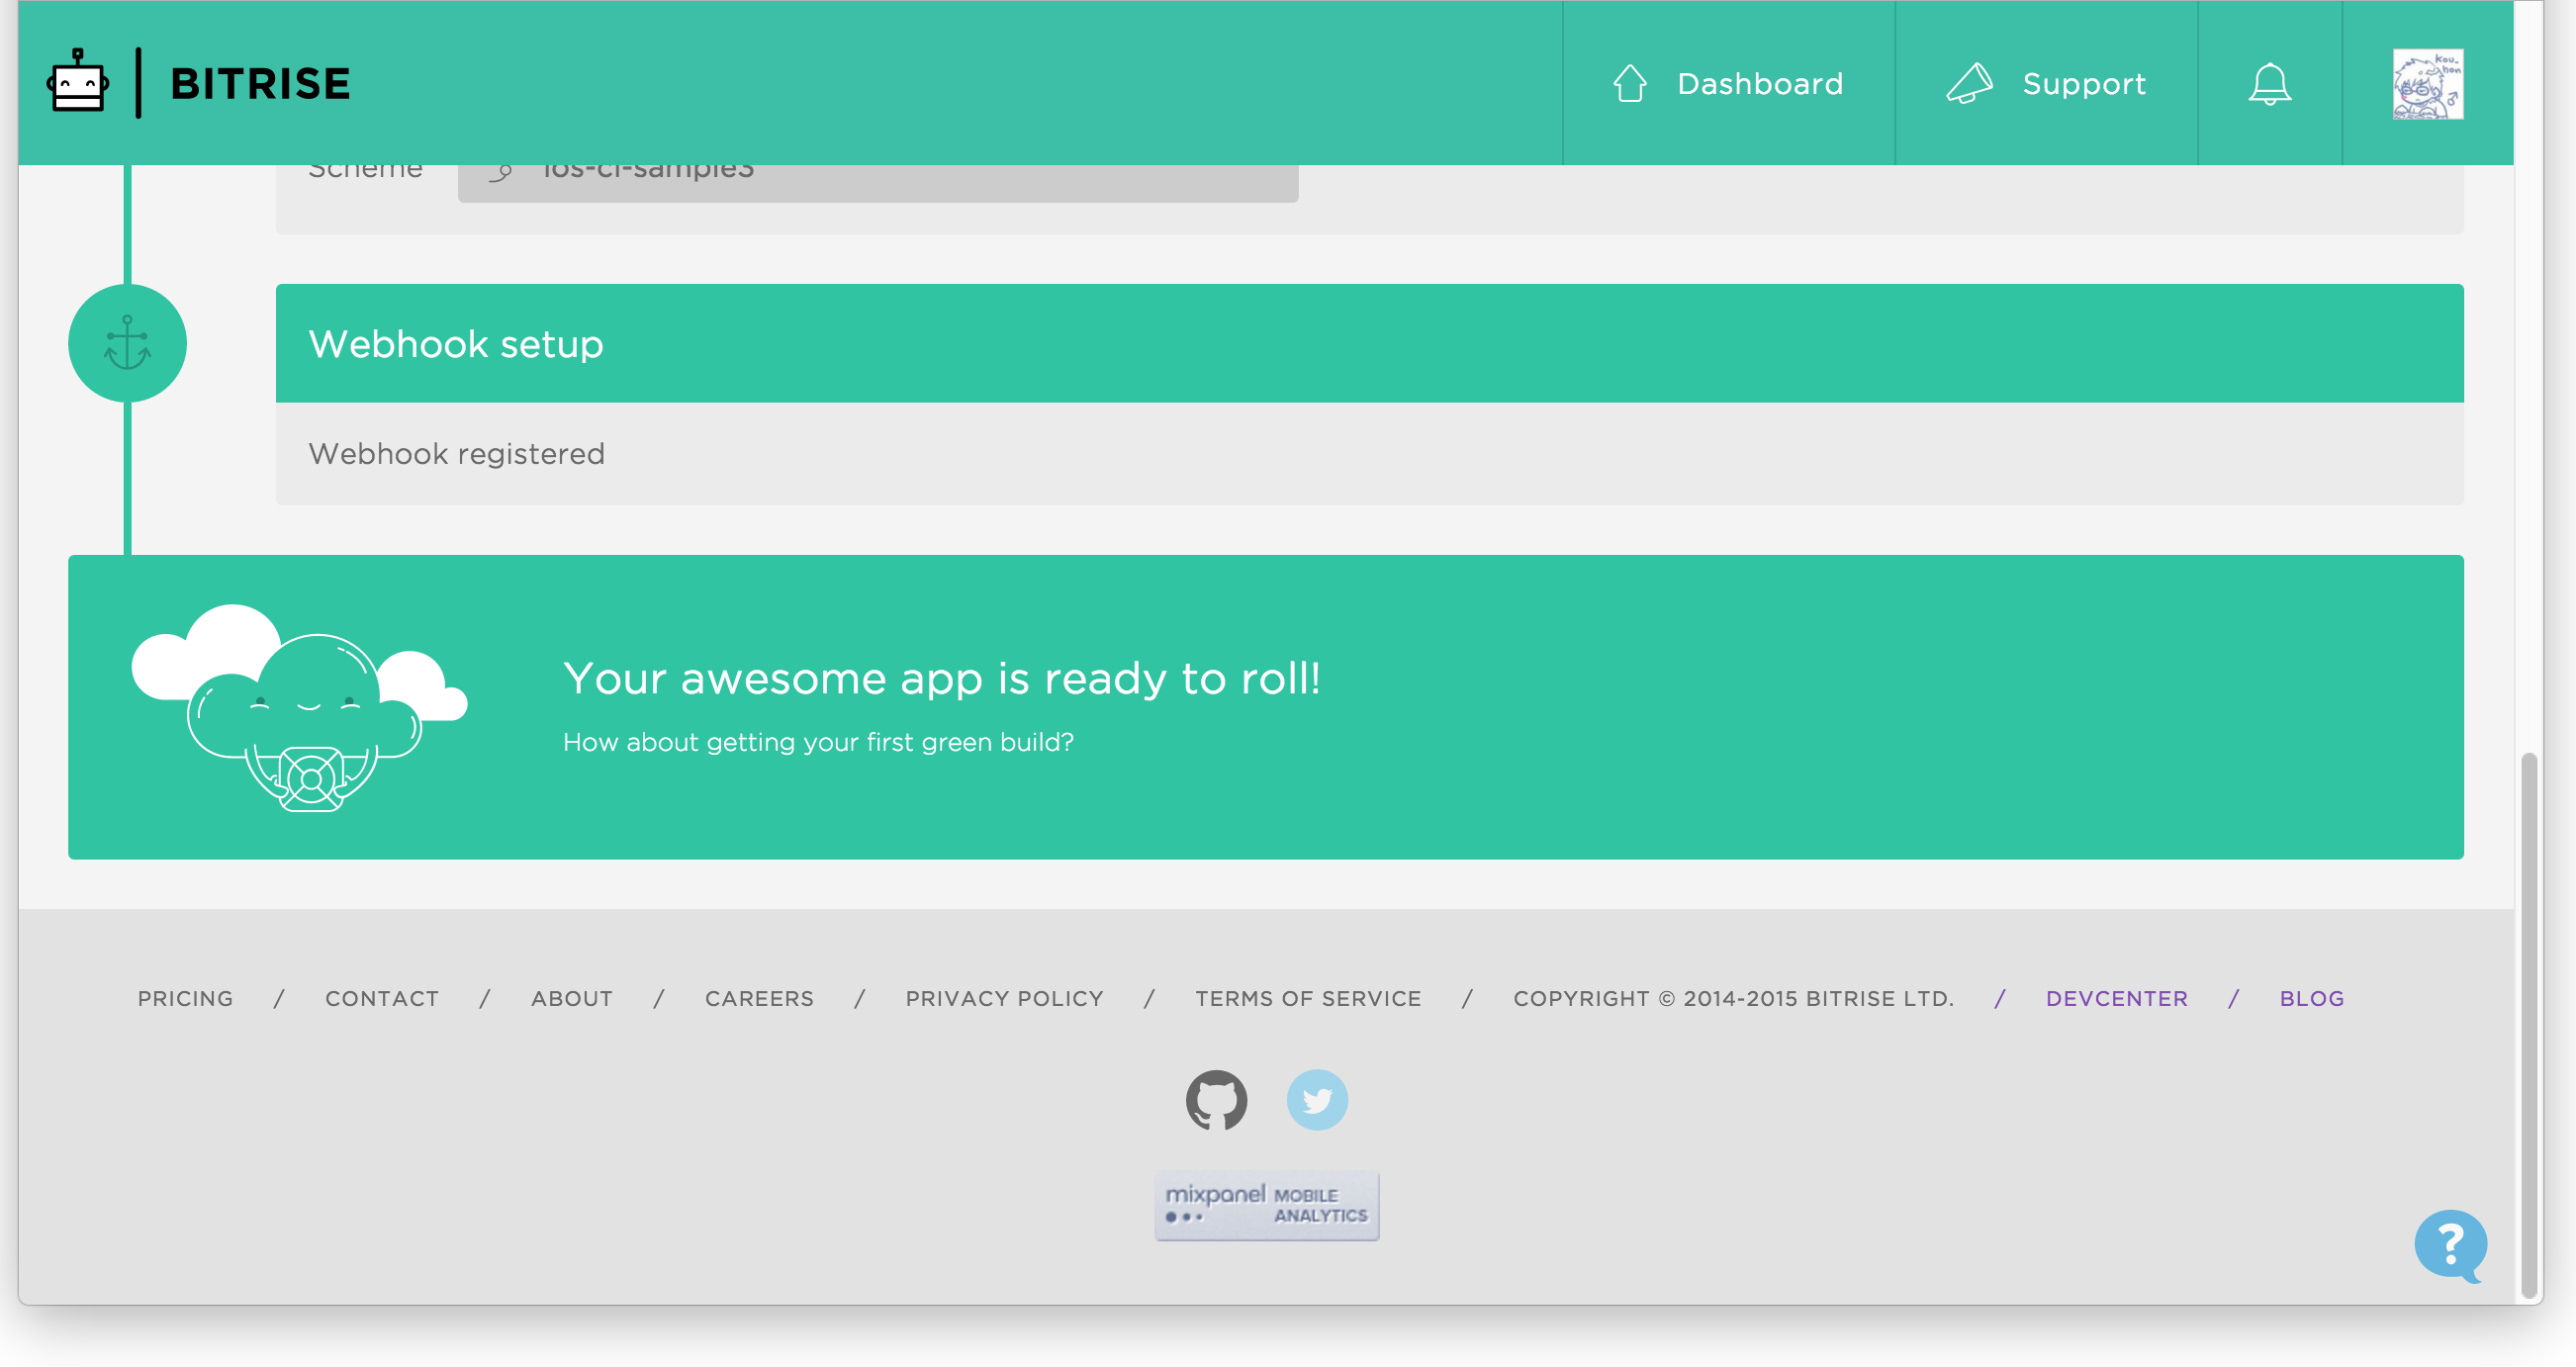 your_awesome_app_is_ready_to_roll.png